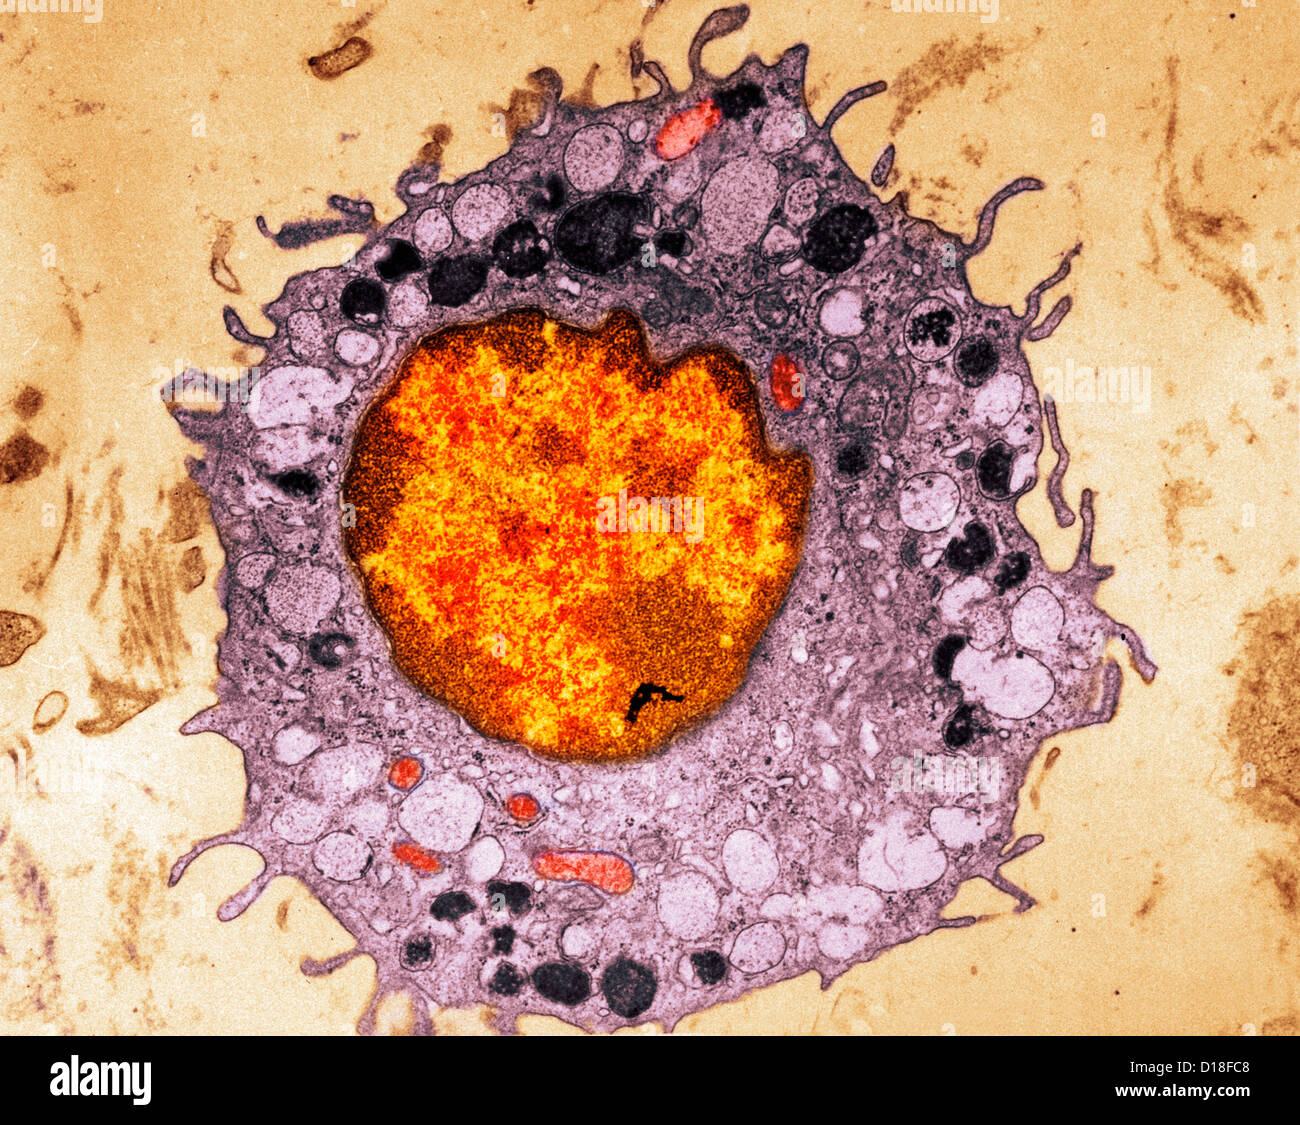 Electron micrograph of mammalian cell - Stock Image